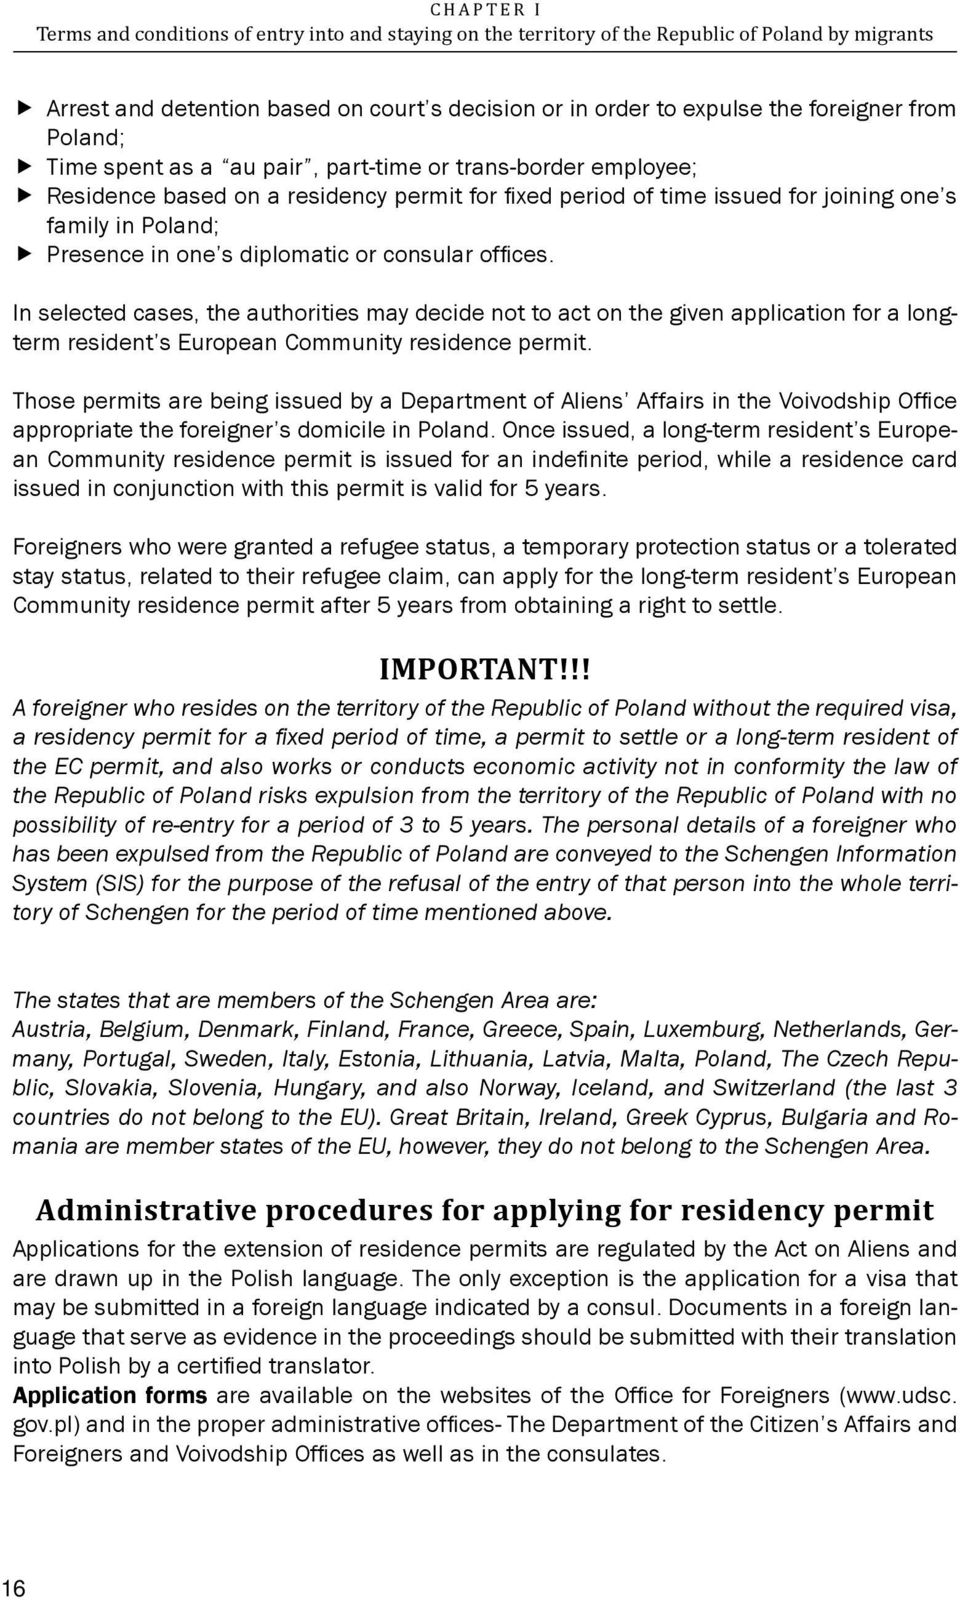 diplomatic or consular offices. In selected cases, the authorities may decide not to act on the given application for a longterm resident s European Community residence permit.